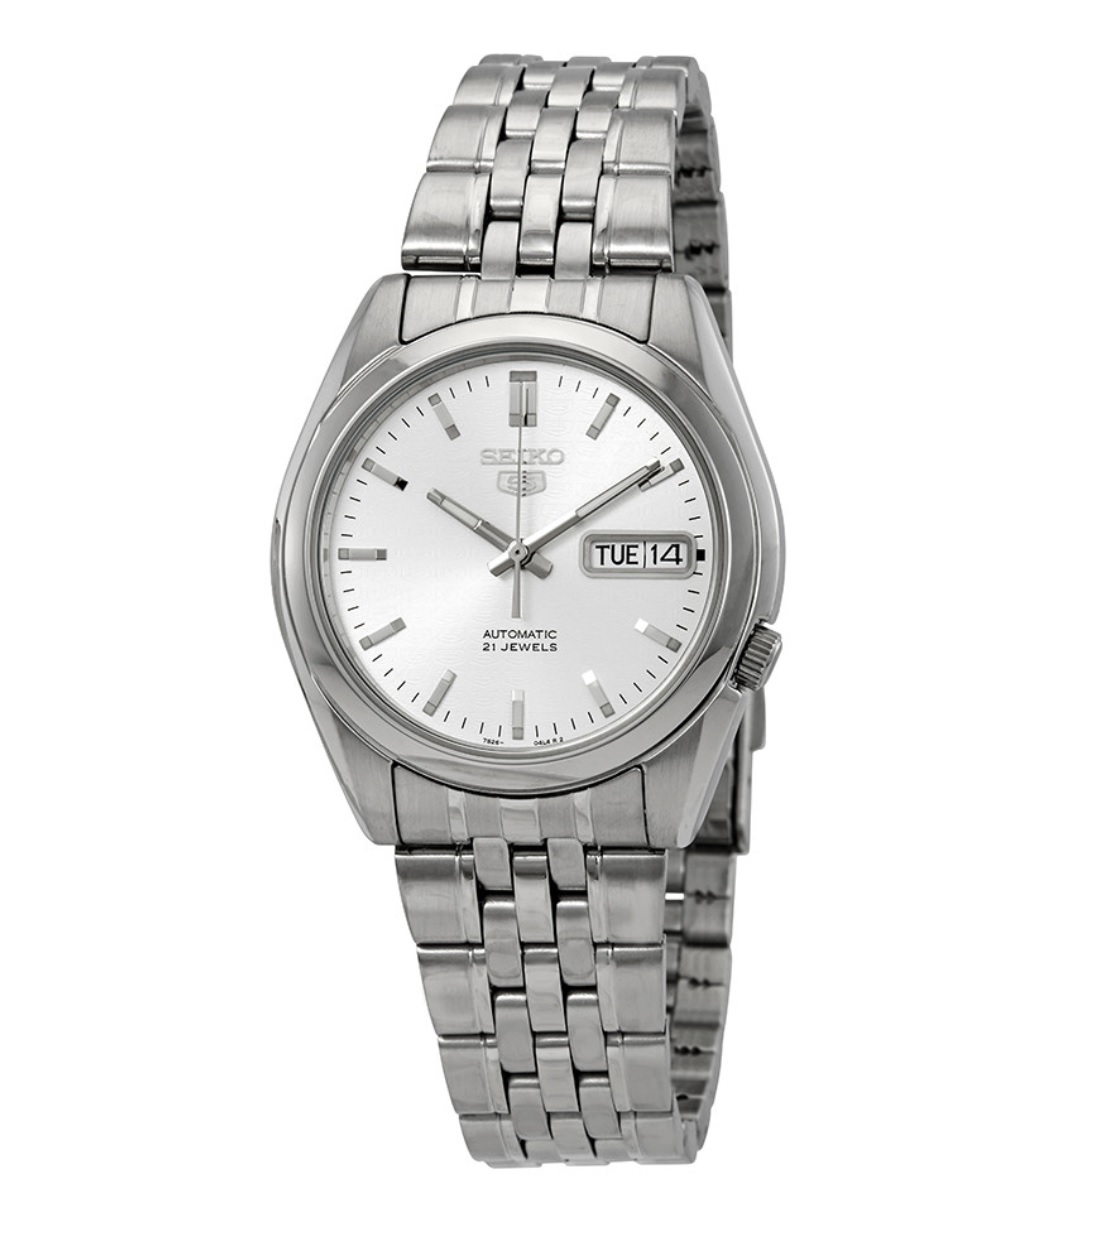 Men's and Women's Seiko Series 5 Automatic Watches